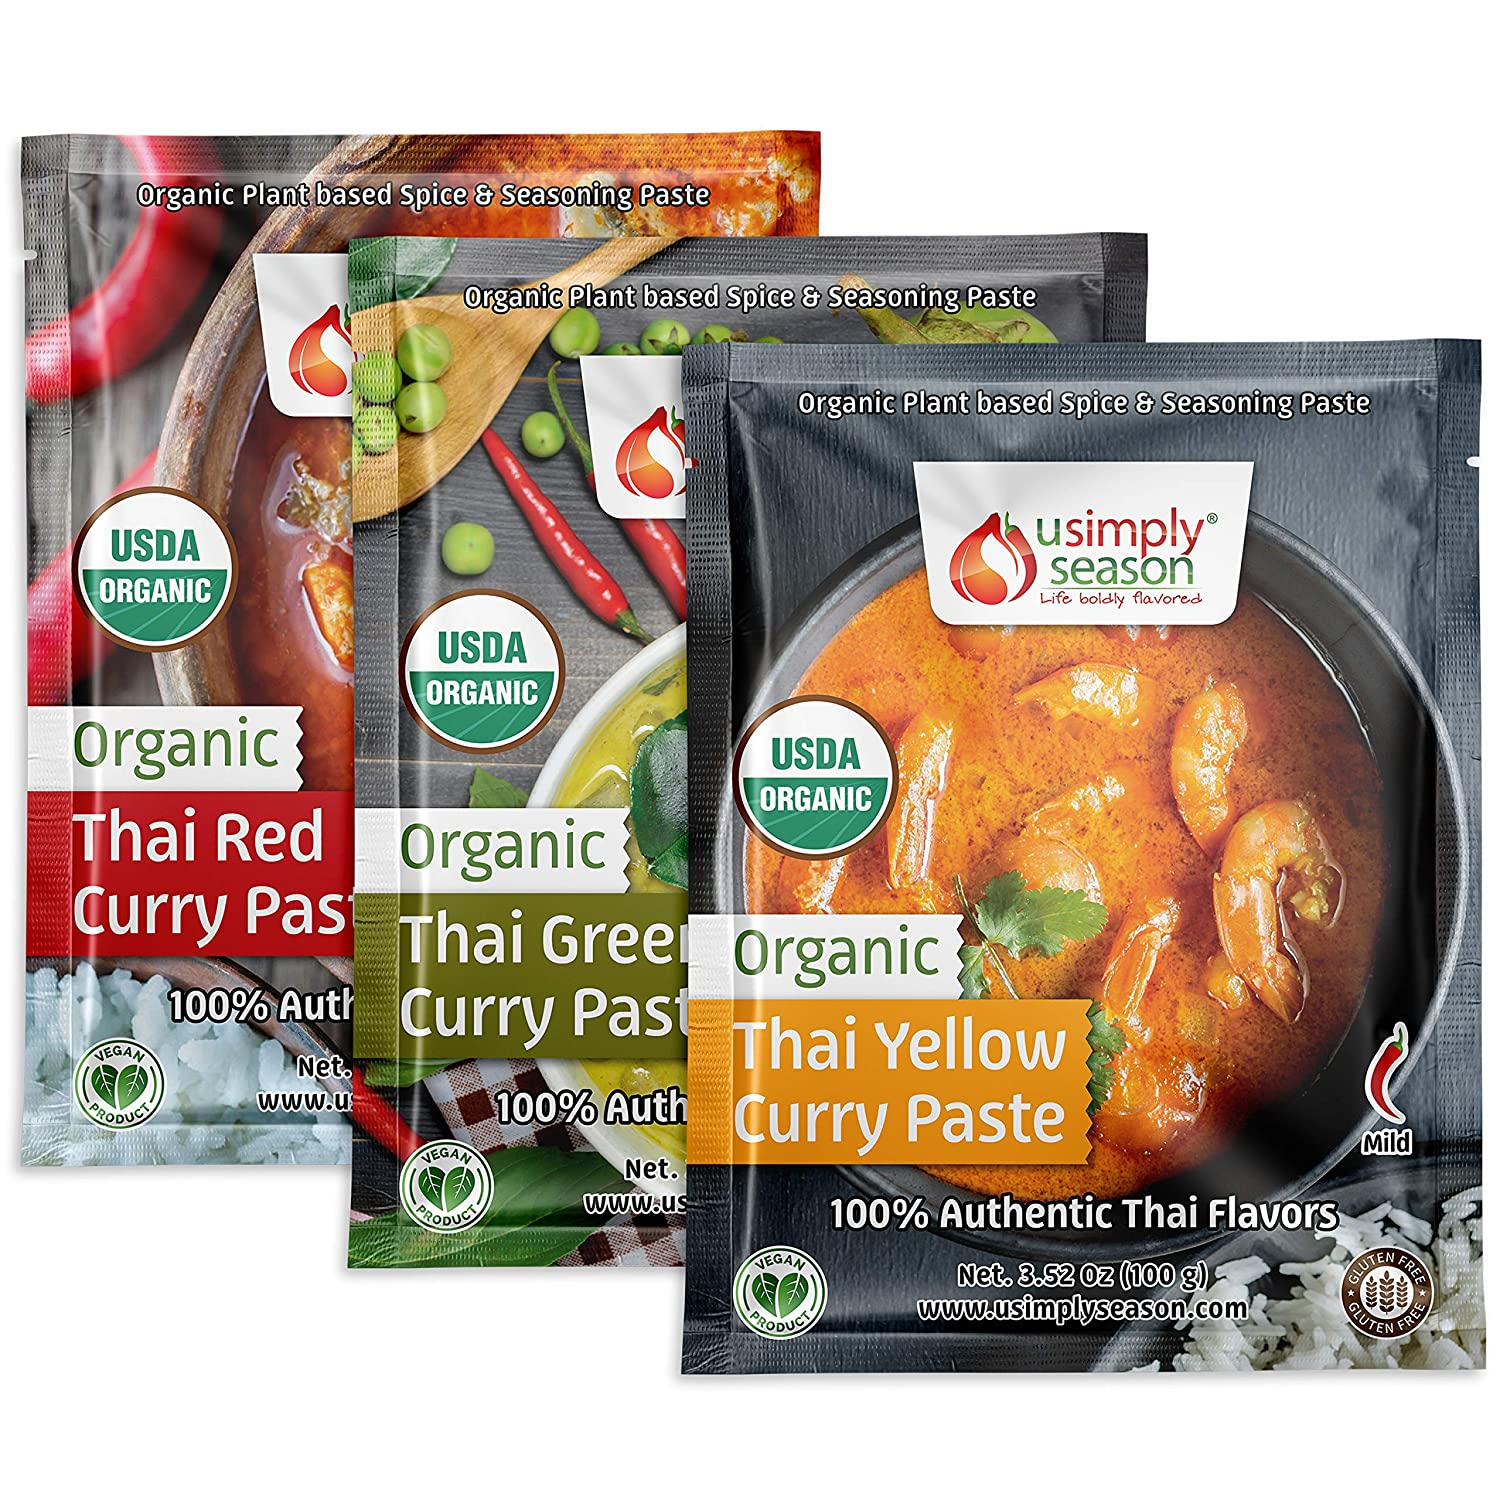 USimplySeason Organic Thai Spice Seasoning Paste Bundle - Yellow Curry, Green Curry & Red Curry (100g each)